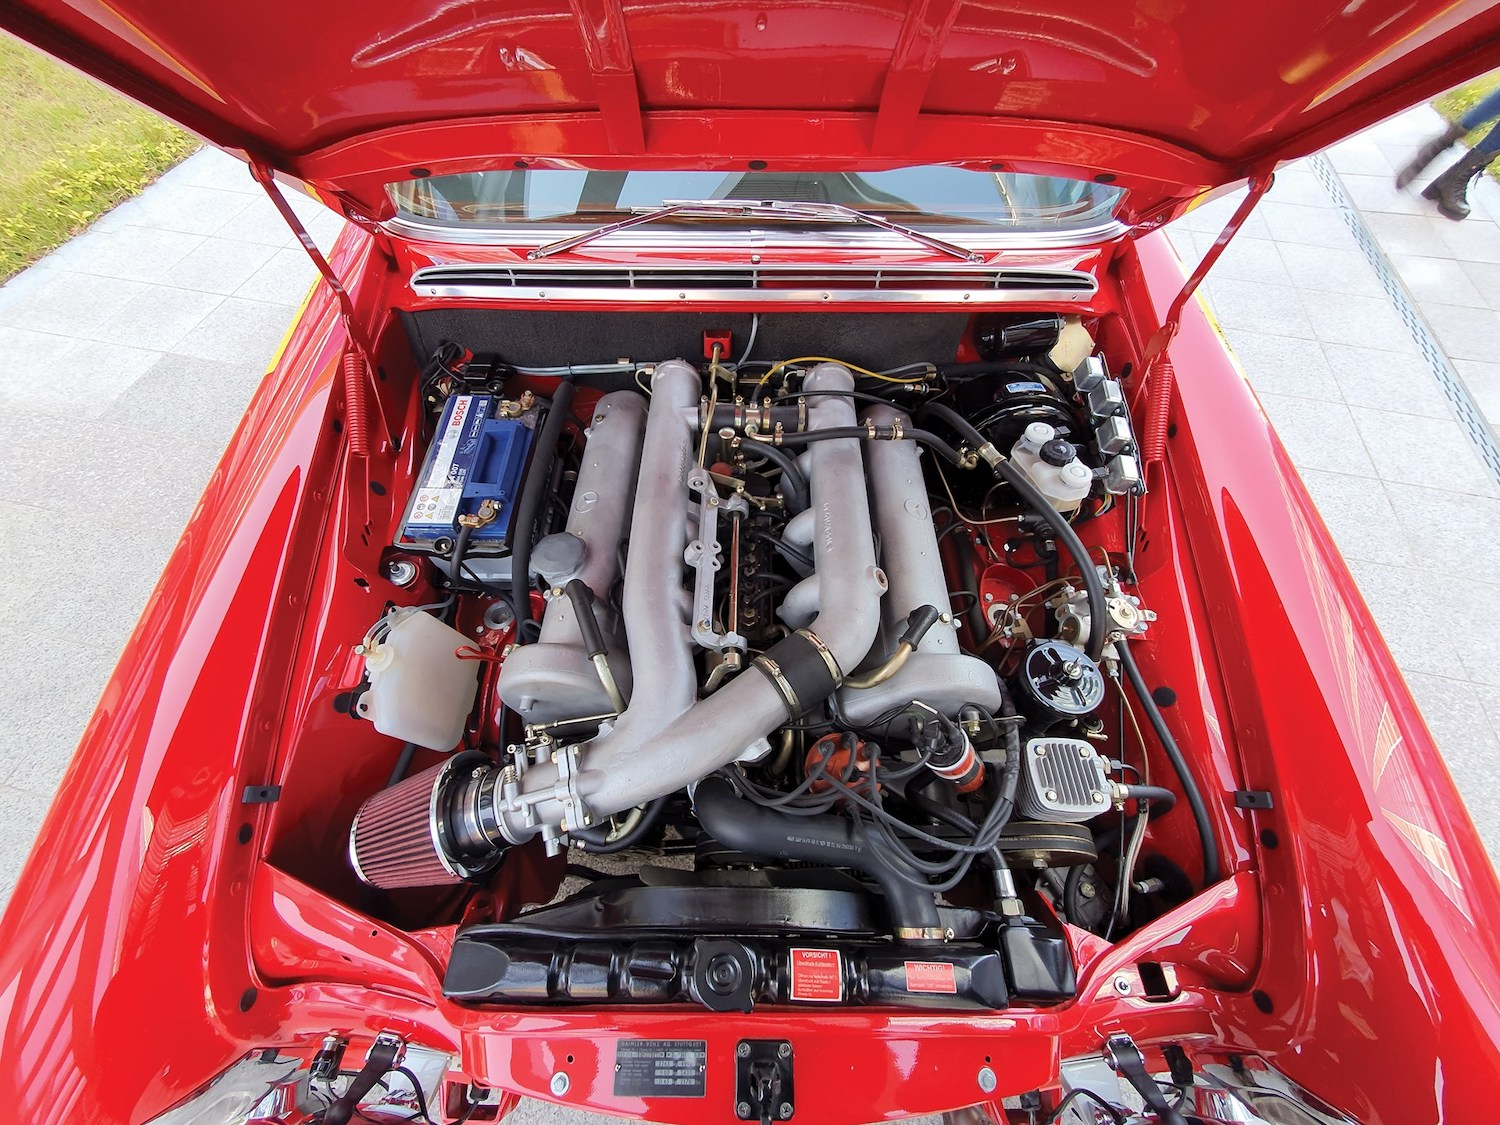 1969 Mercedes-Benz 300 SEL 6.3 'Red Pig' Replica engine